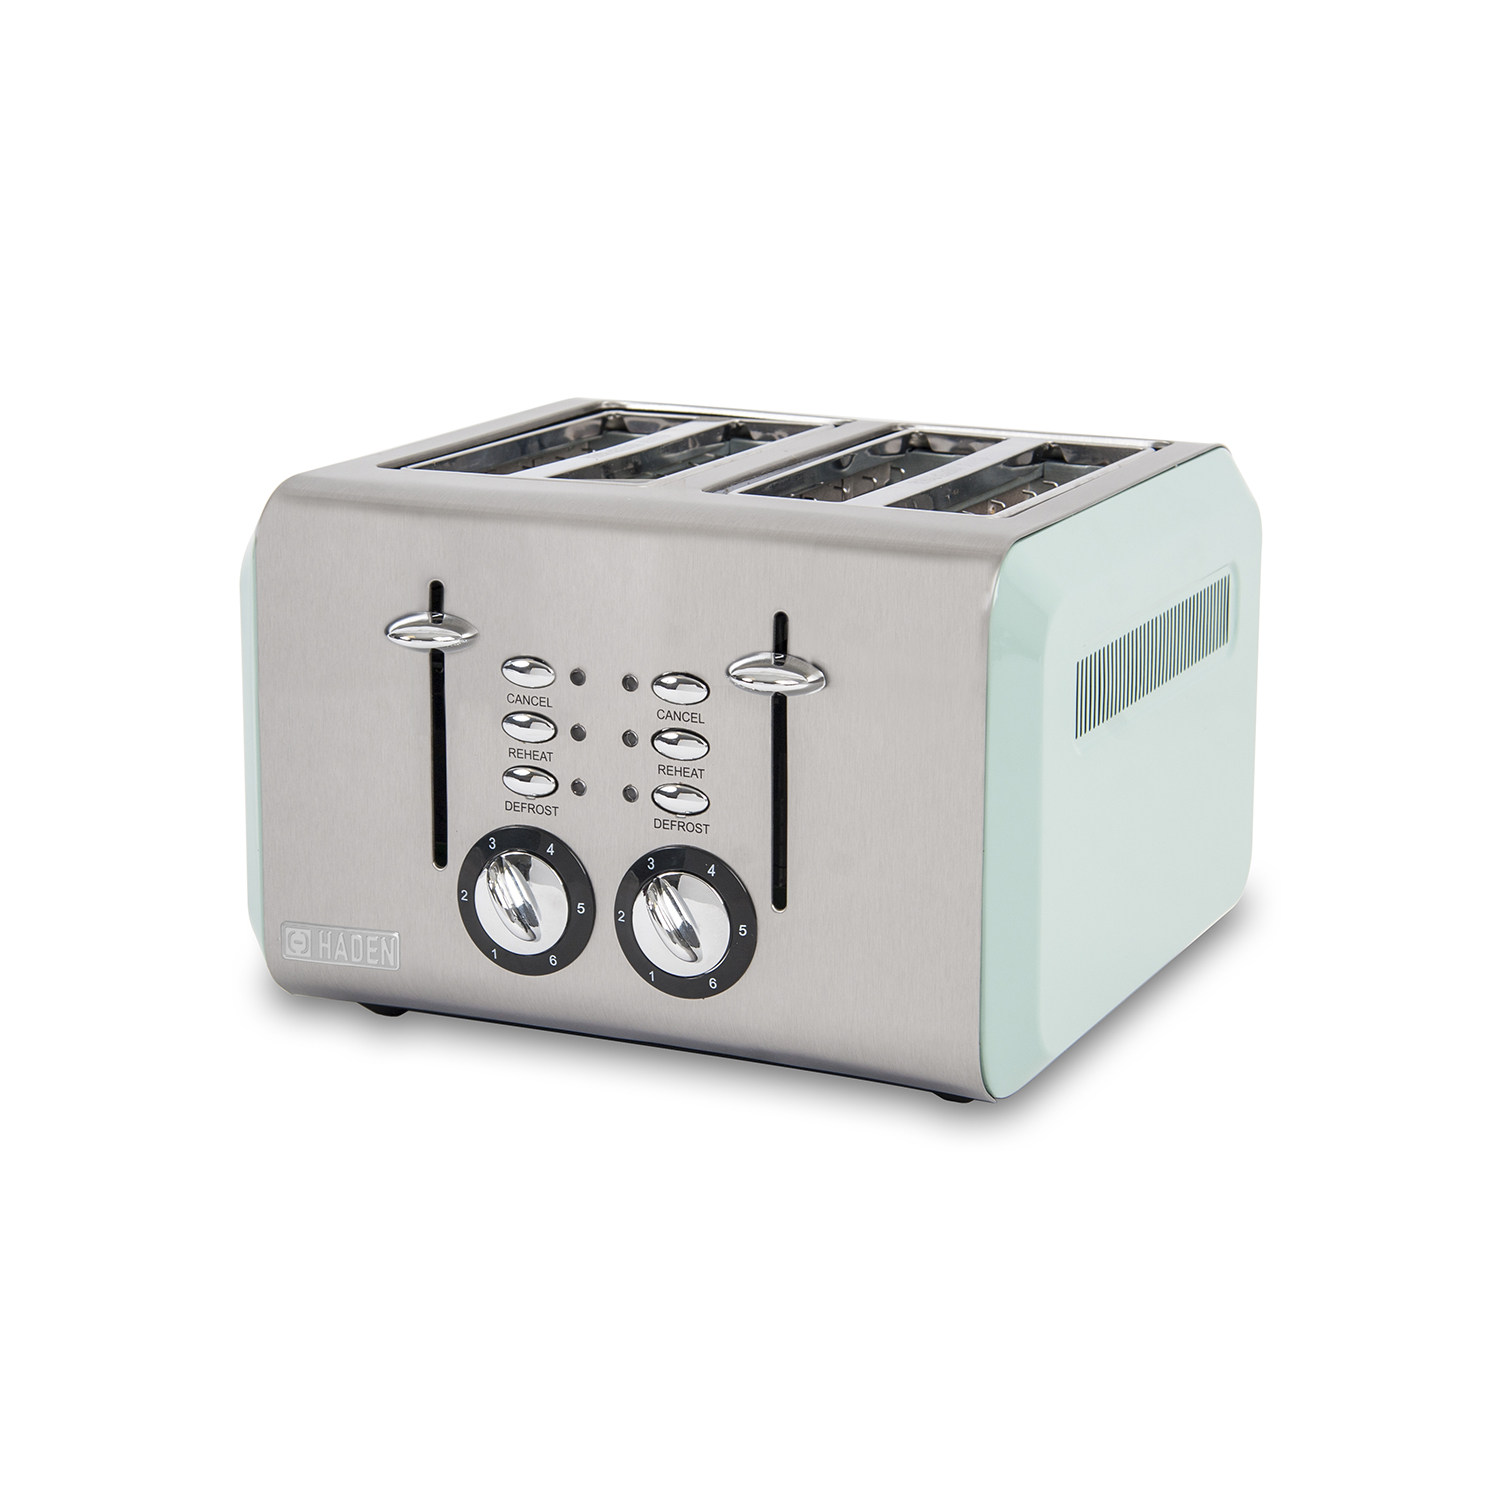 Image of Haden Cotswold Toaster, Sage